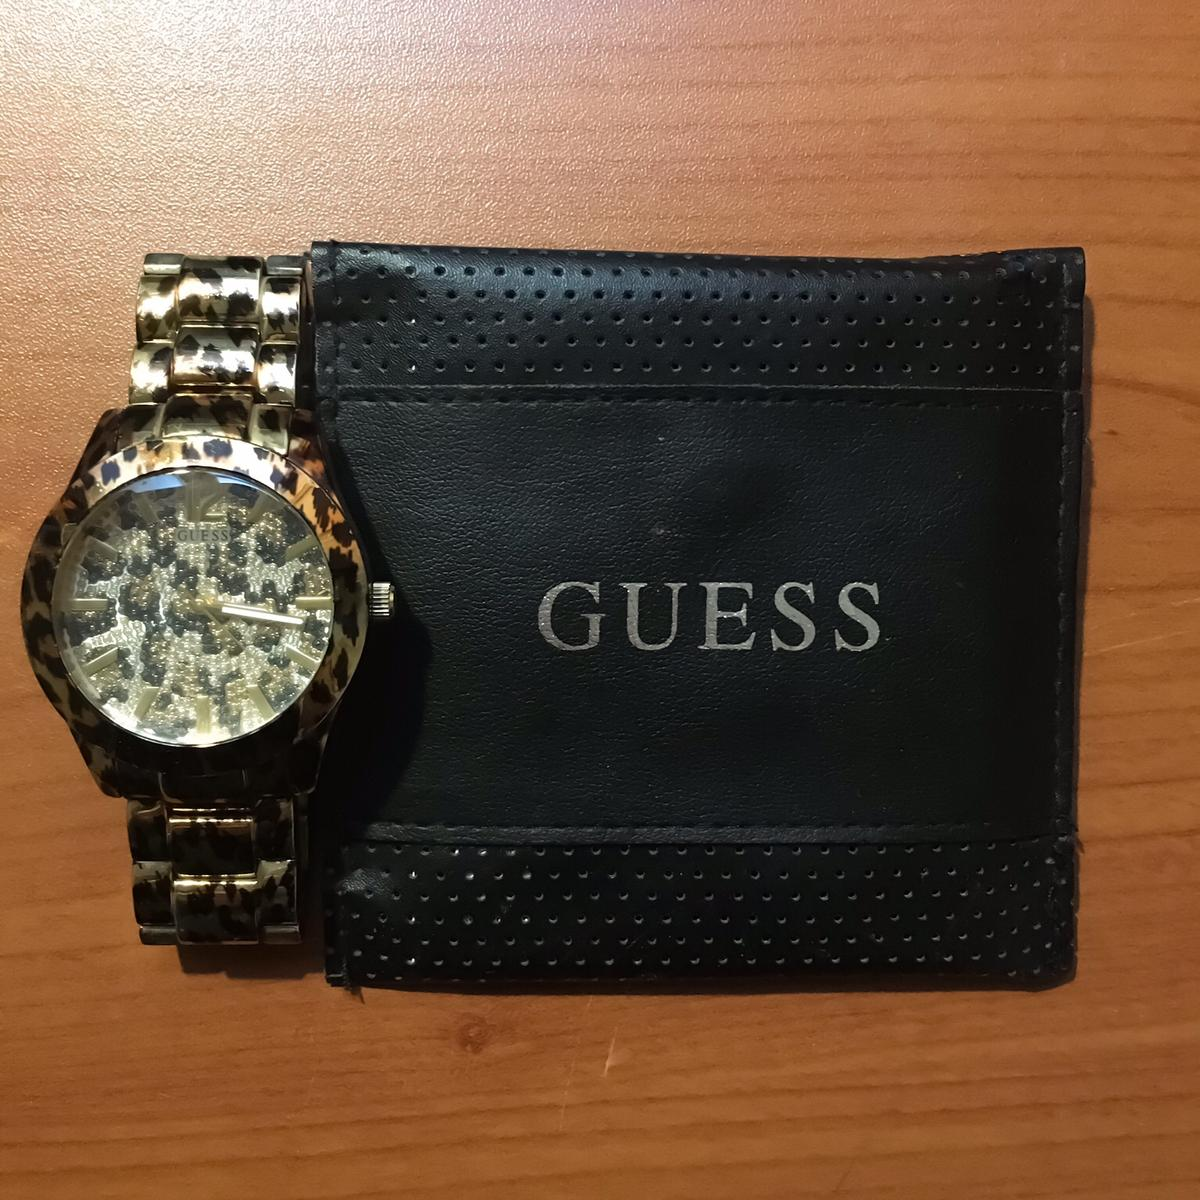 5cc4e40801 Guess orologio leopardato in 50112 Firenze for €35.00 for sale - Shpock